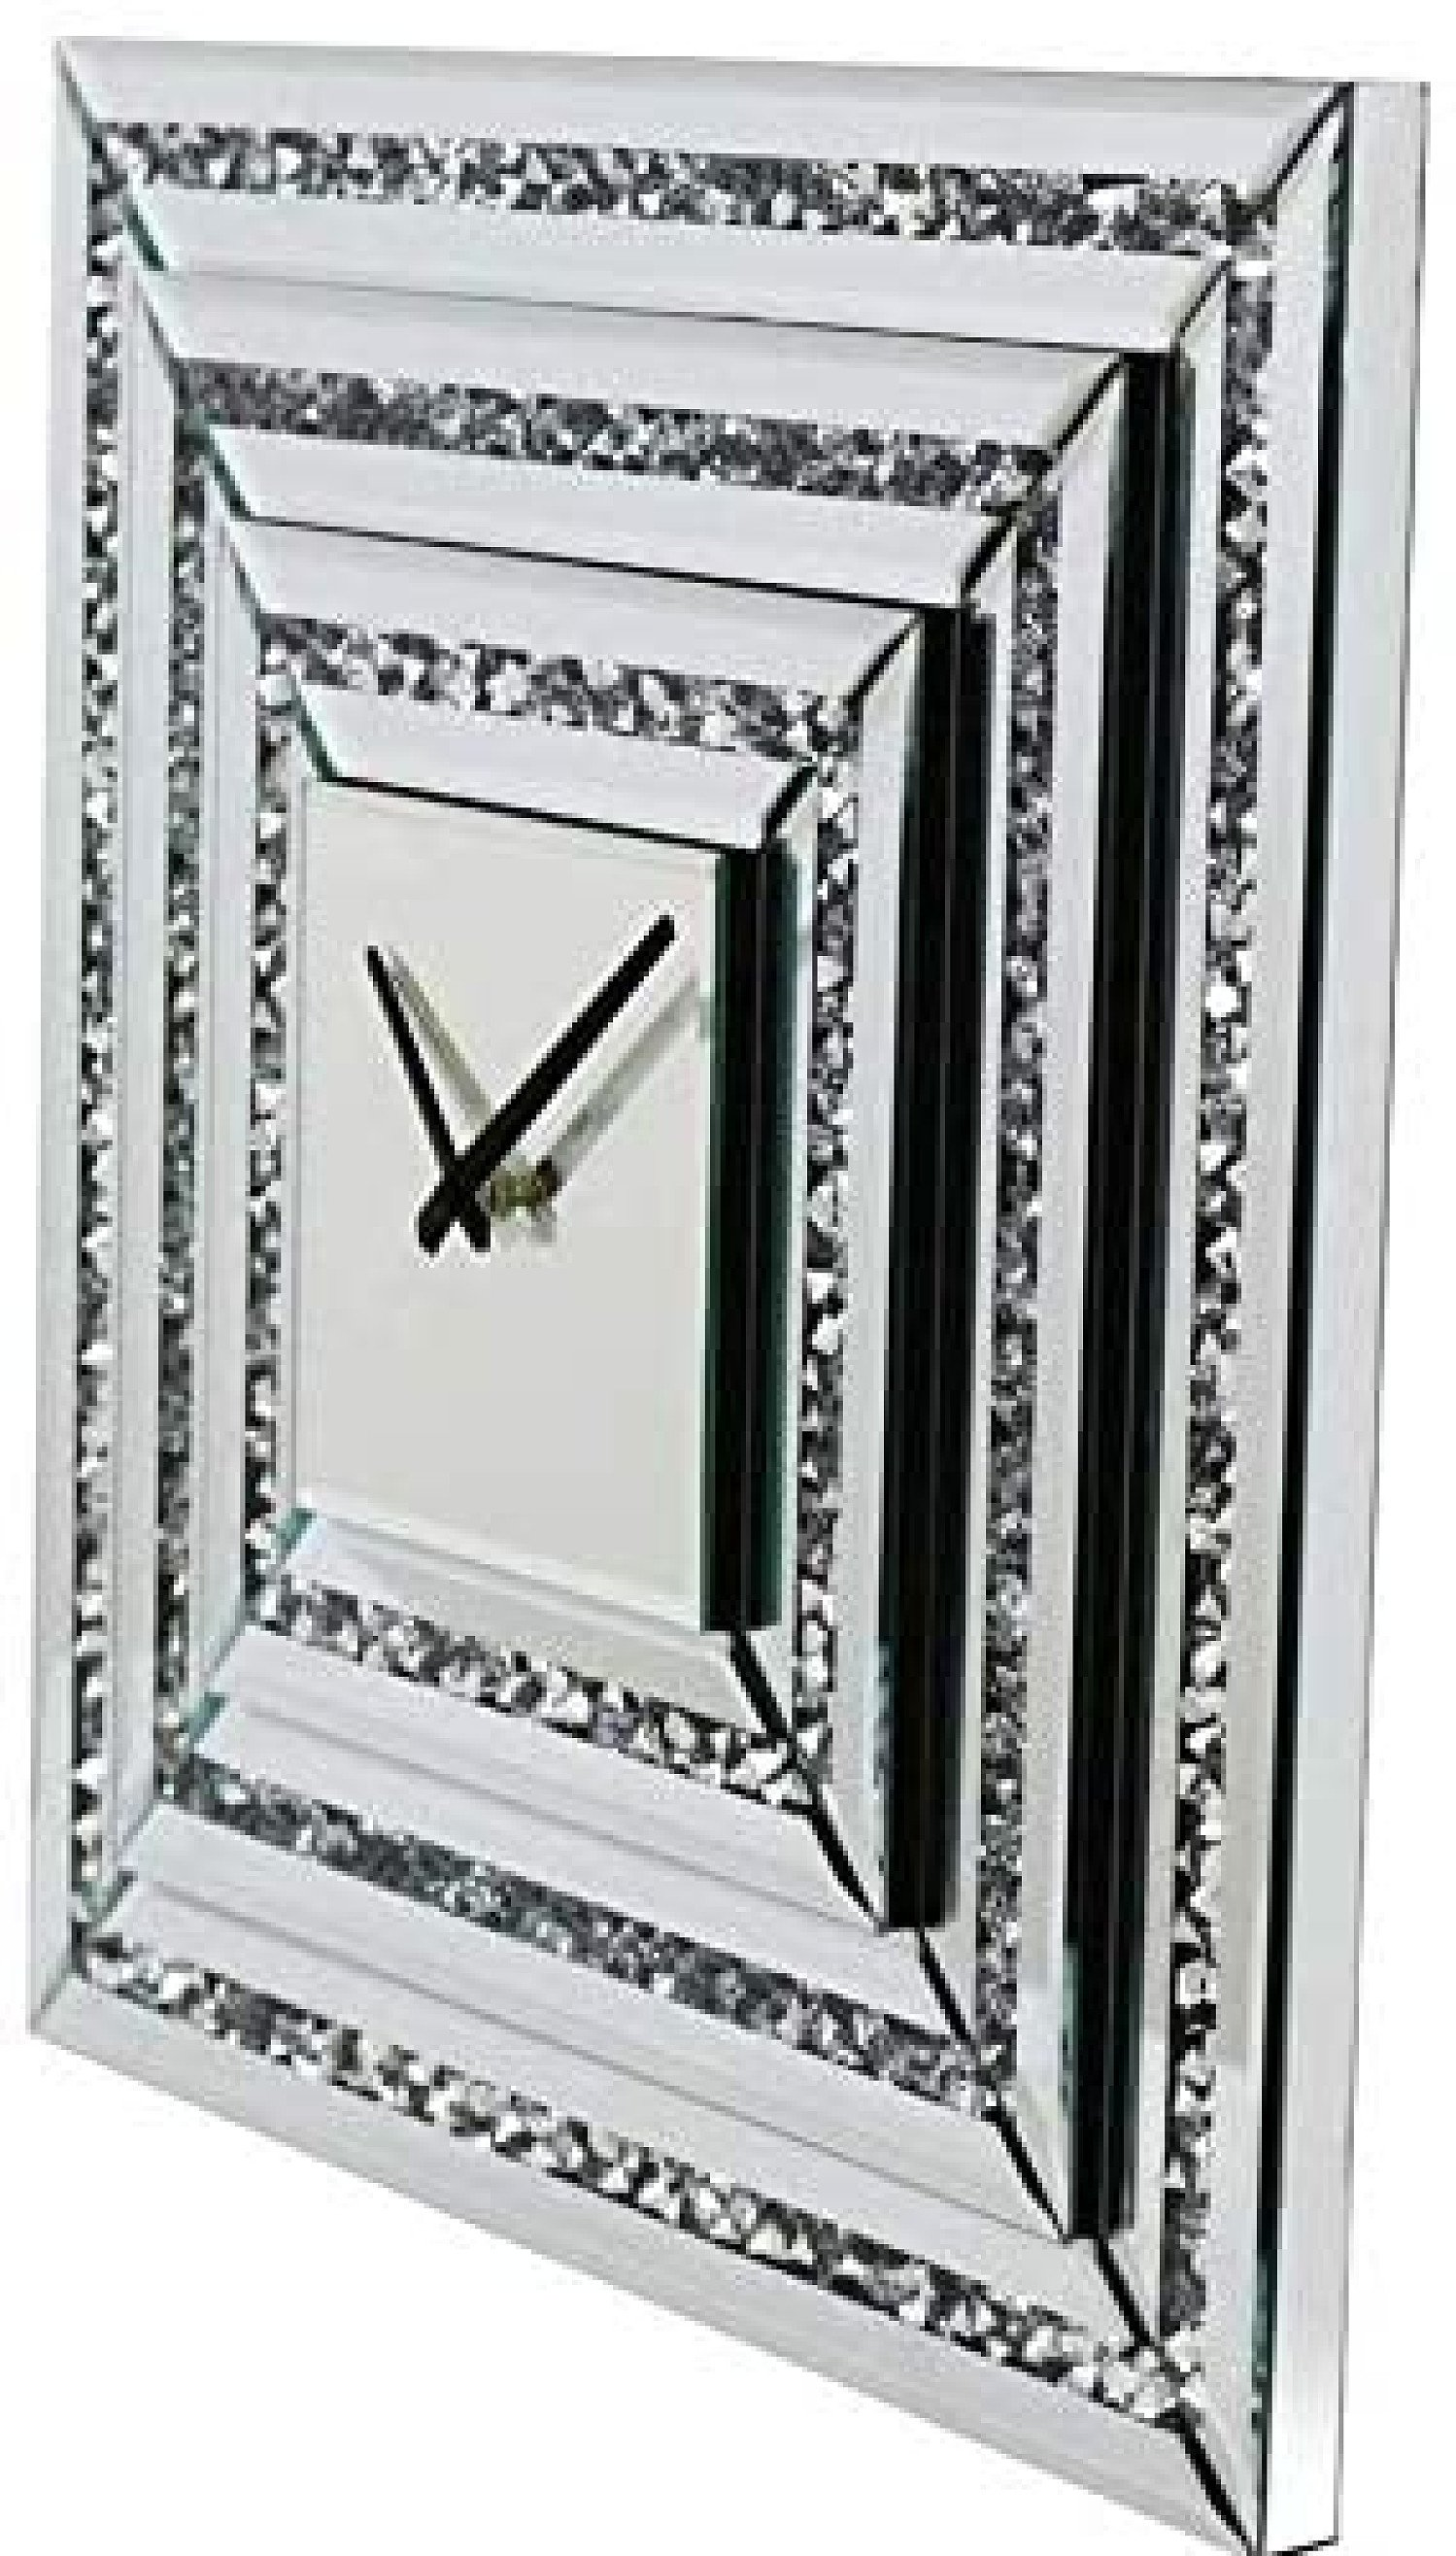 Large Mirrored Glass Silver Crushed Diamond Crystal Wall Clock 50cm x 50cm Free Postage